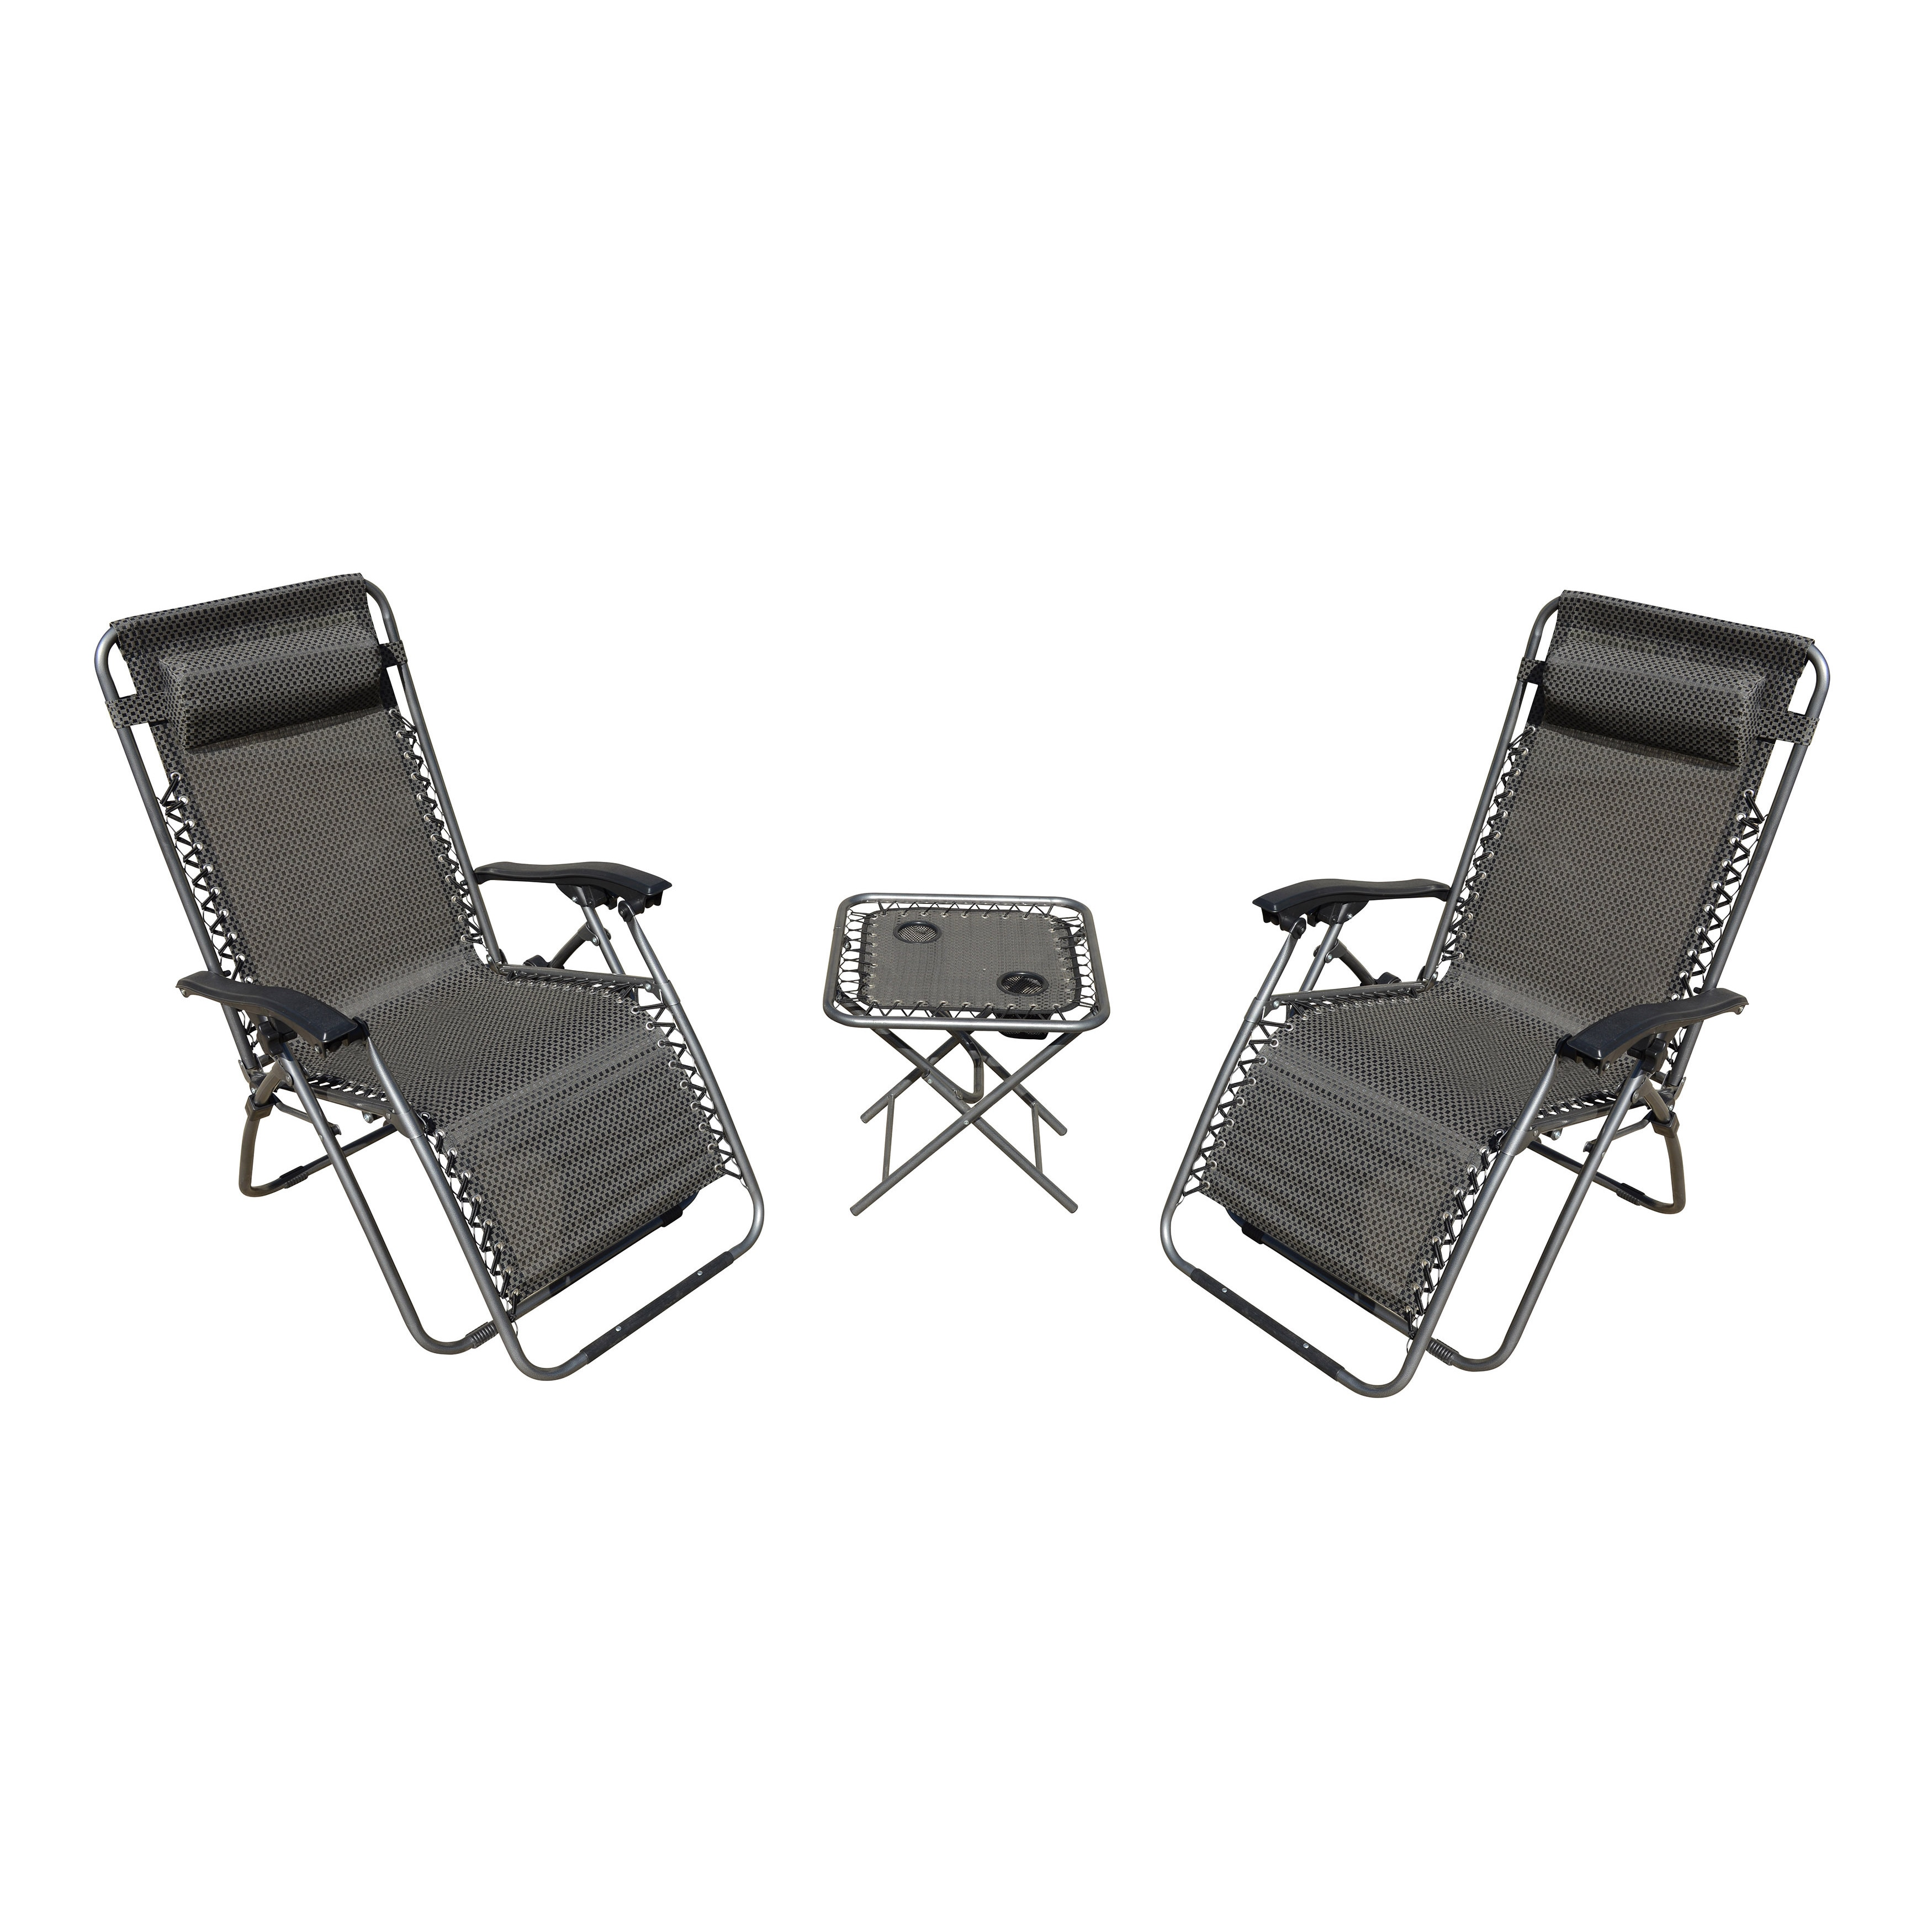 Shop Zero Gravity 3 Piece Camping Chairs And Table Set   Free Shipping  Today   Overstock.com   14741775